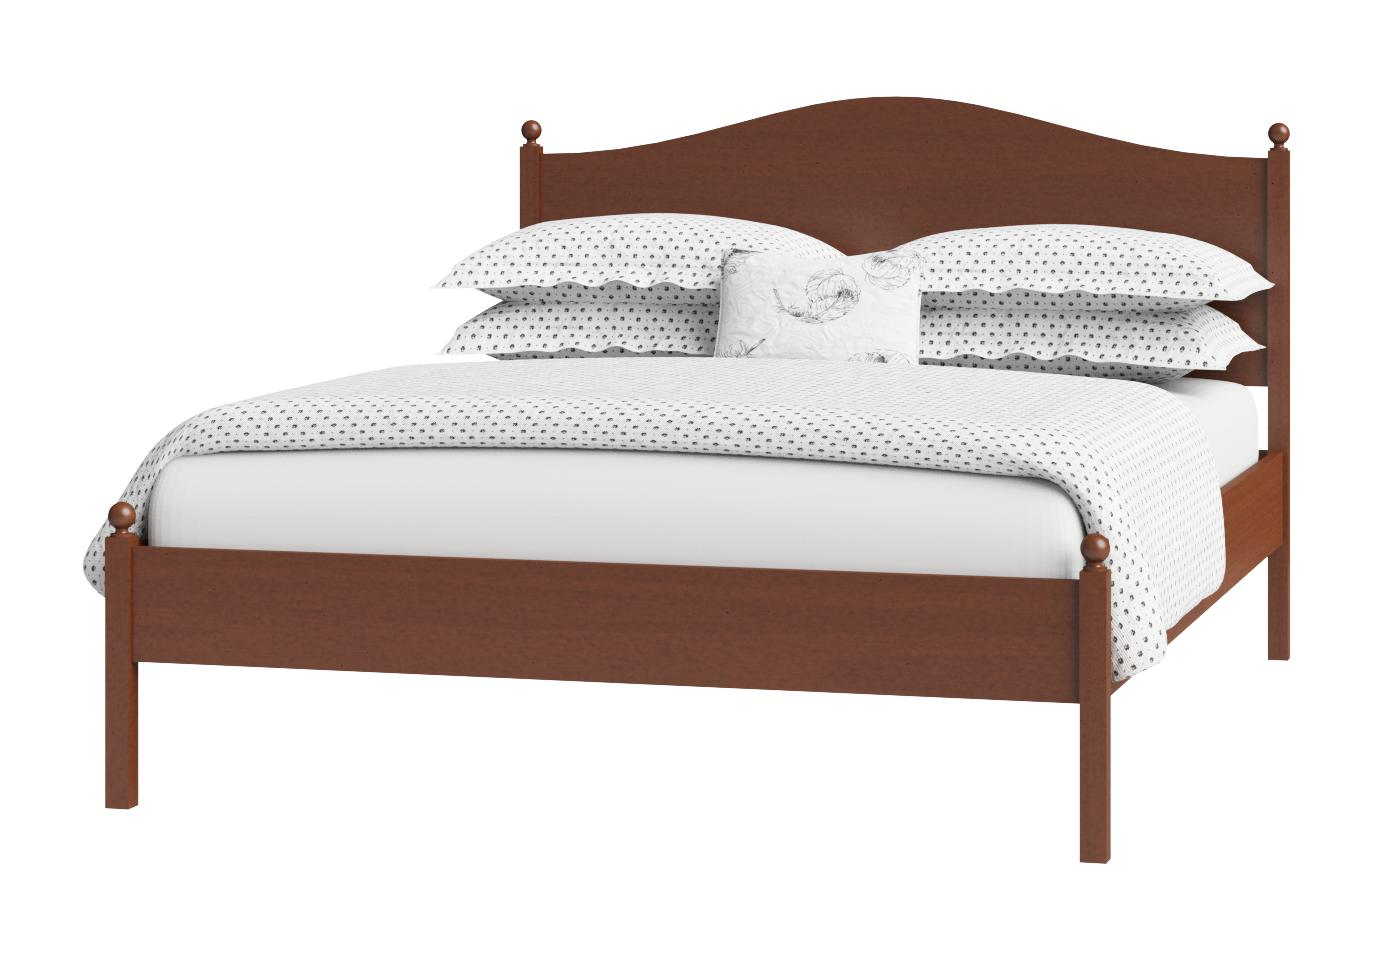 Cutout of Brady low footend wood bed in a dark cherry finish